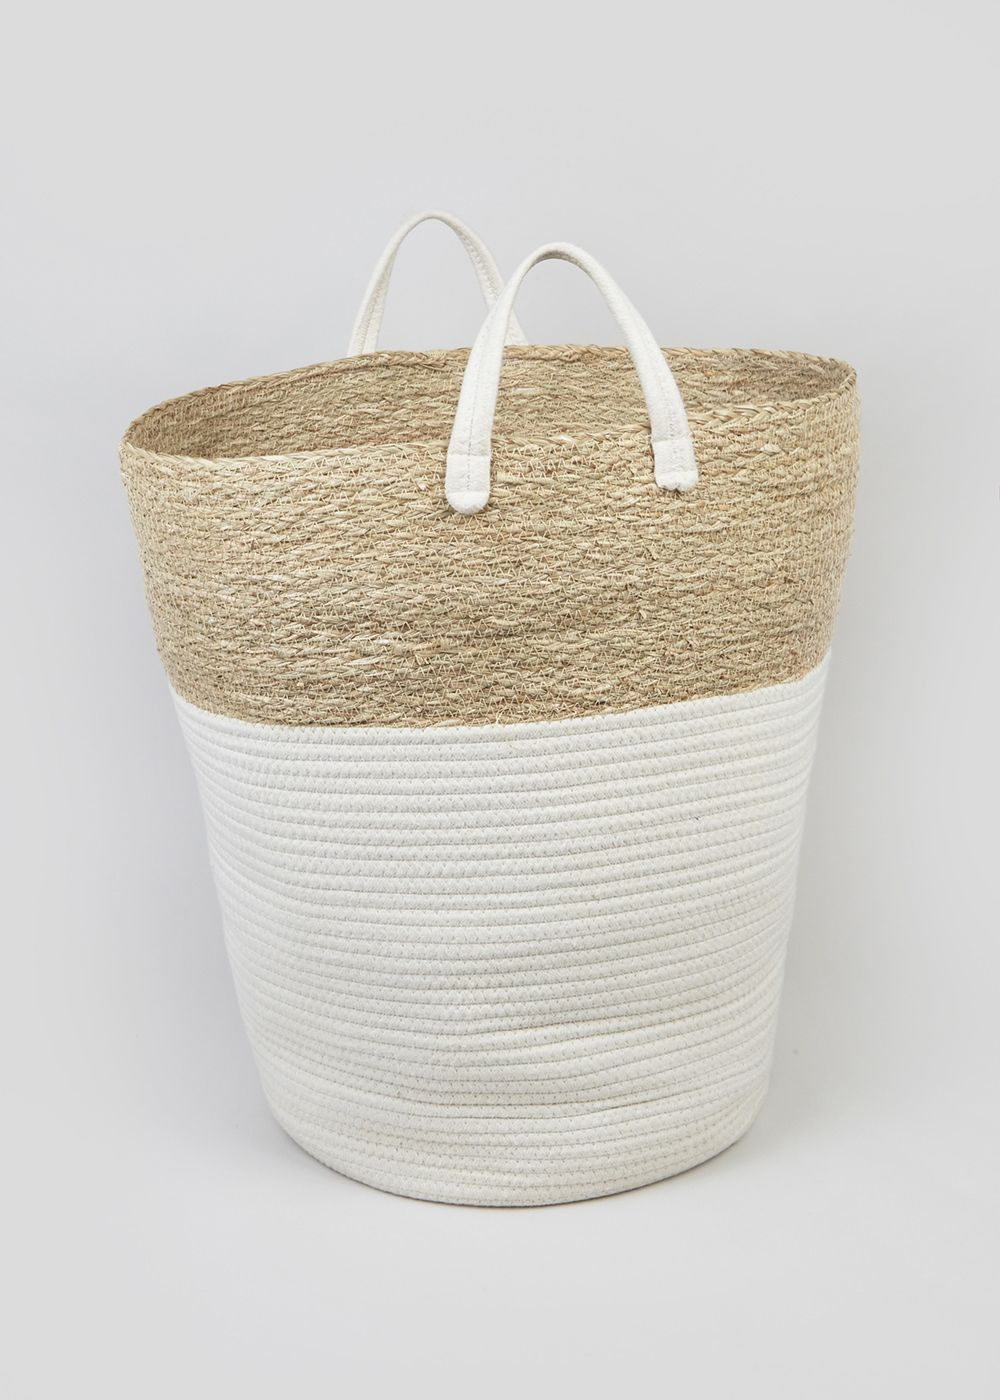 Rope Laundry Basket 50cm X 30cm Natural Home Wishlist intended for size 1000 X 1400